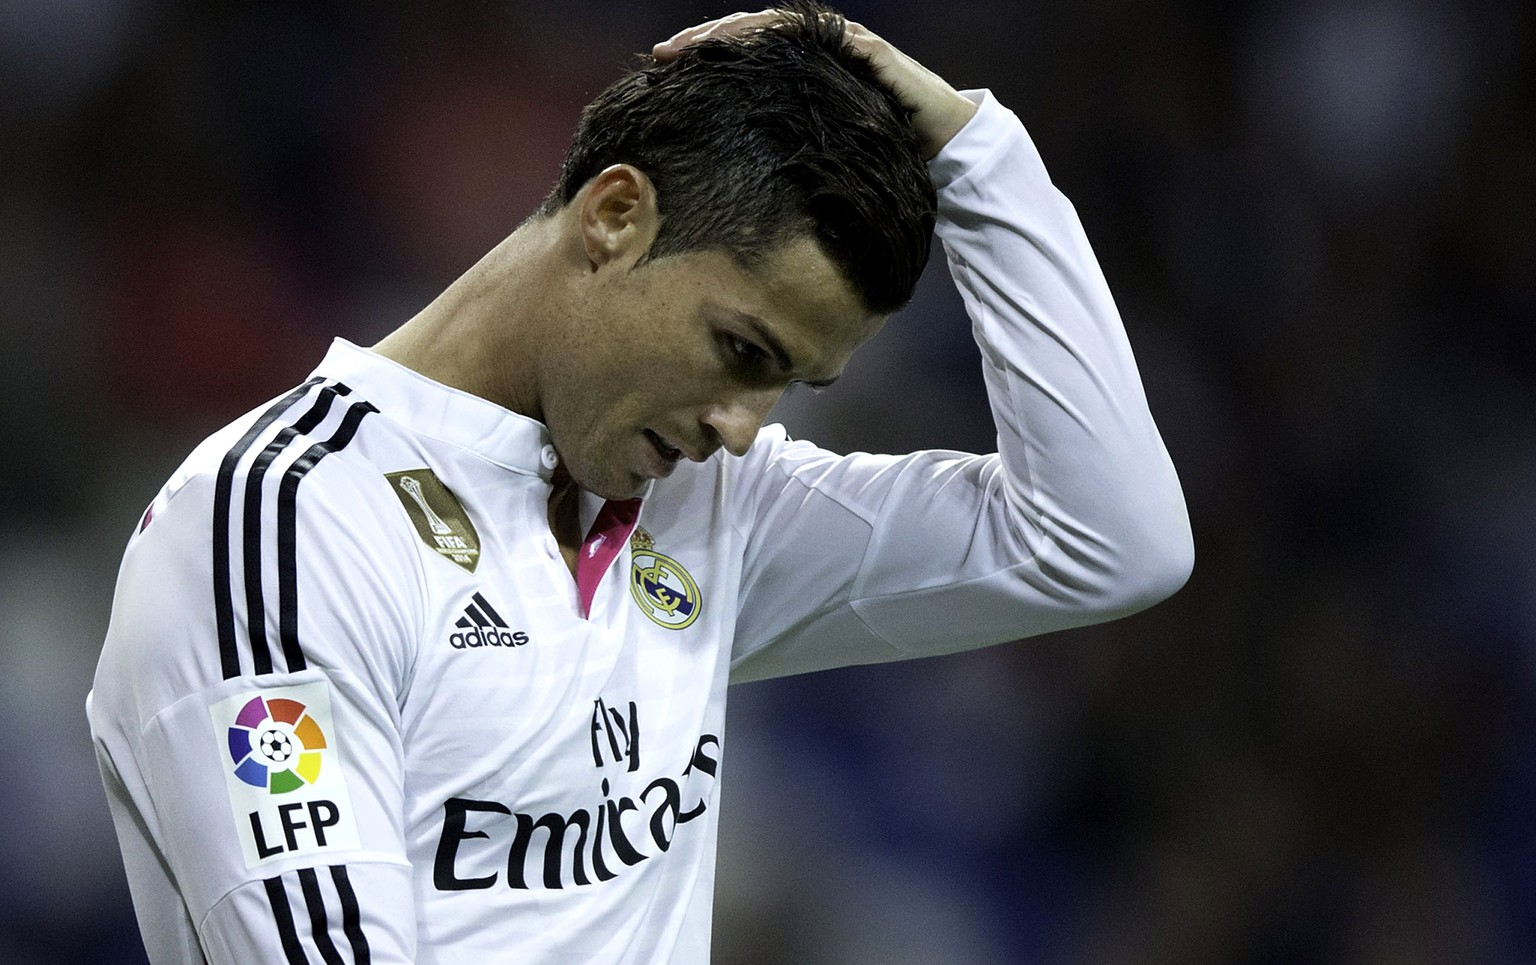 MADRID, SPAIN - APRIL 29:  Cristiano Ronaldo of Real Madrid CF reacts defeated as he leaves the pitch after the La Liga match between Real Madrid CF and UD Almeria at Estadio Santiago Bernabeu on April 29, 2015 in Madrid, Spain.  (Photo by Gonzalo Arroyo Moreno/Getty Images)